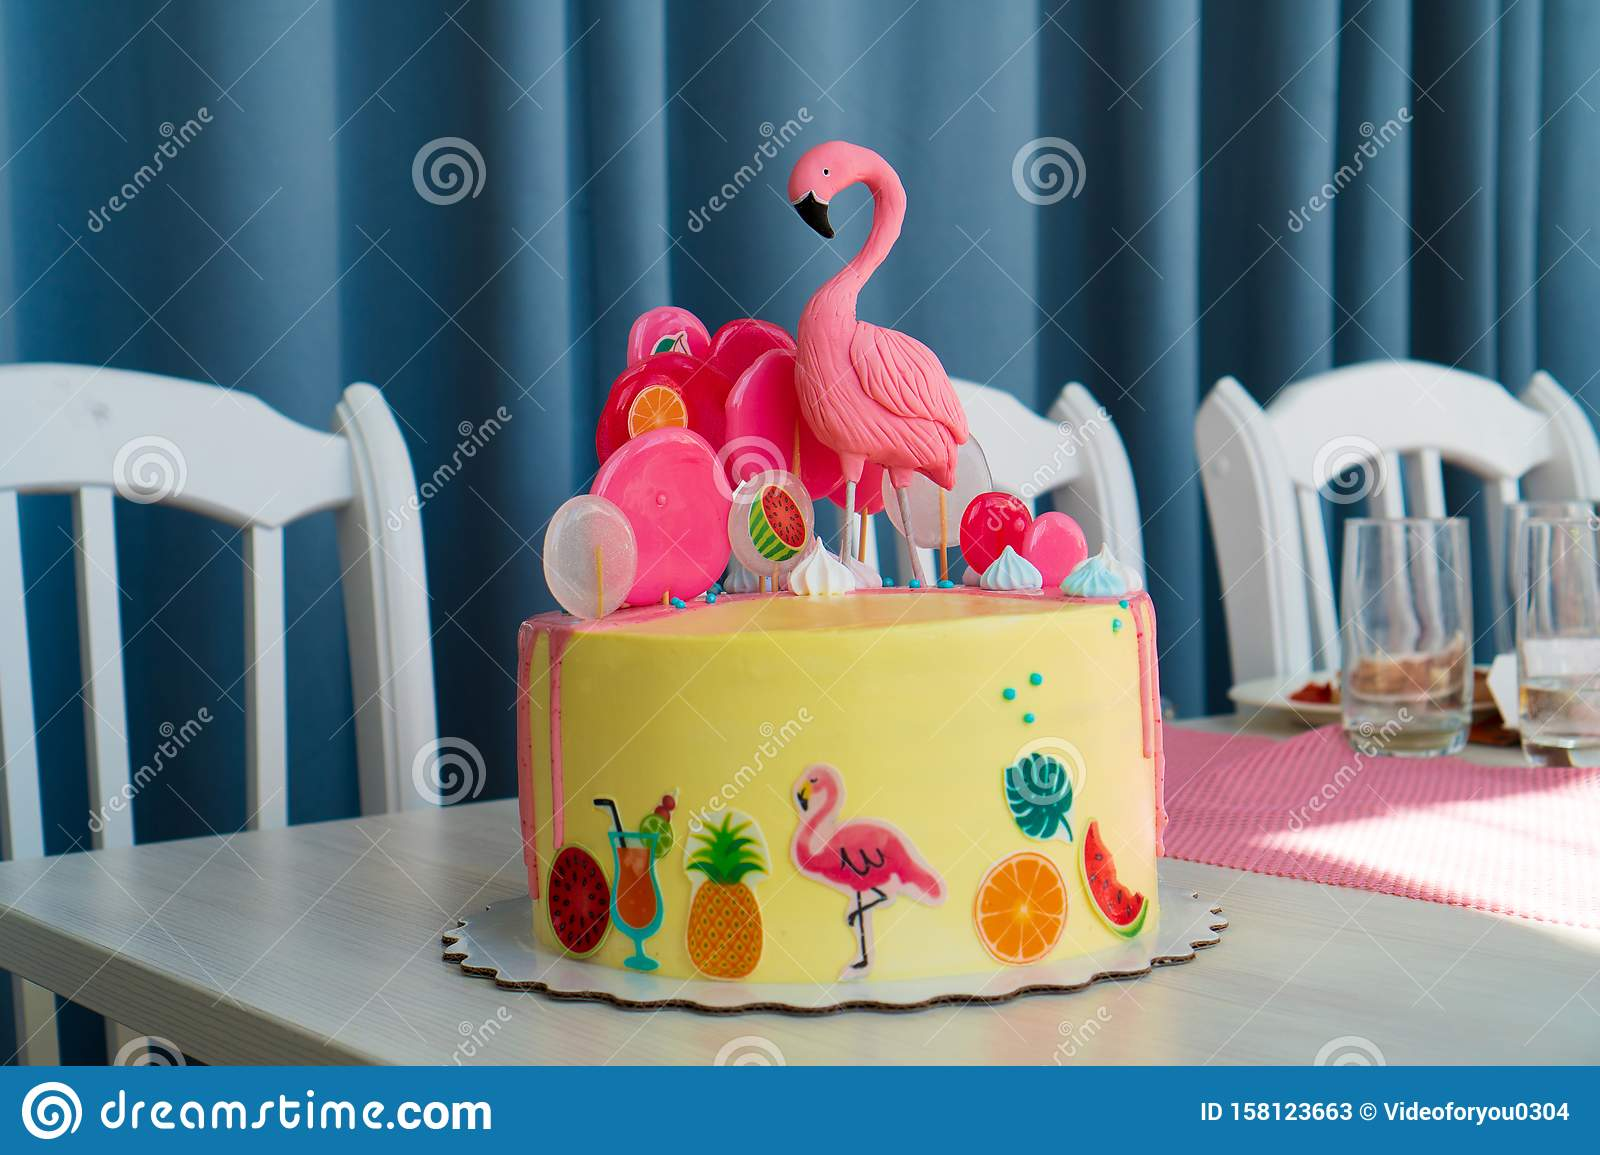 Miraculous Flamingo Cake At The Hawaiian Party Childrens Birthday Cake Aon Birthday Cards Printable Opercafe Filternl